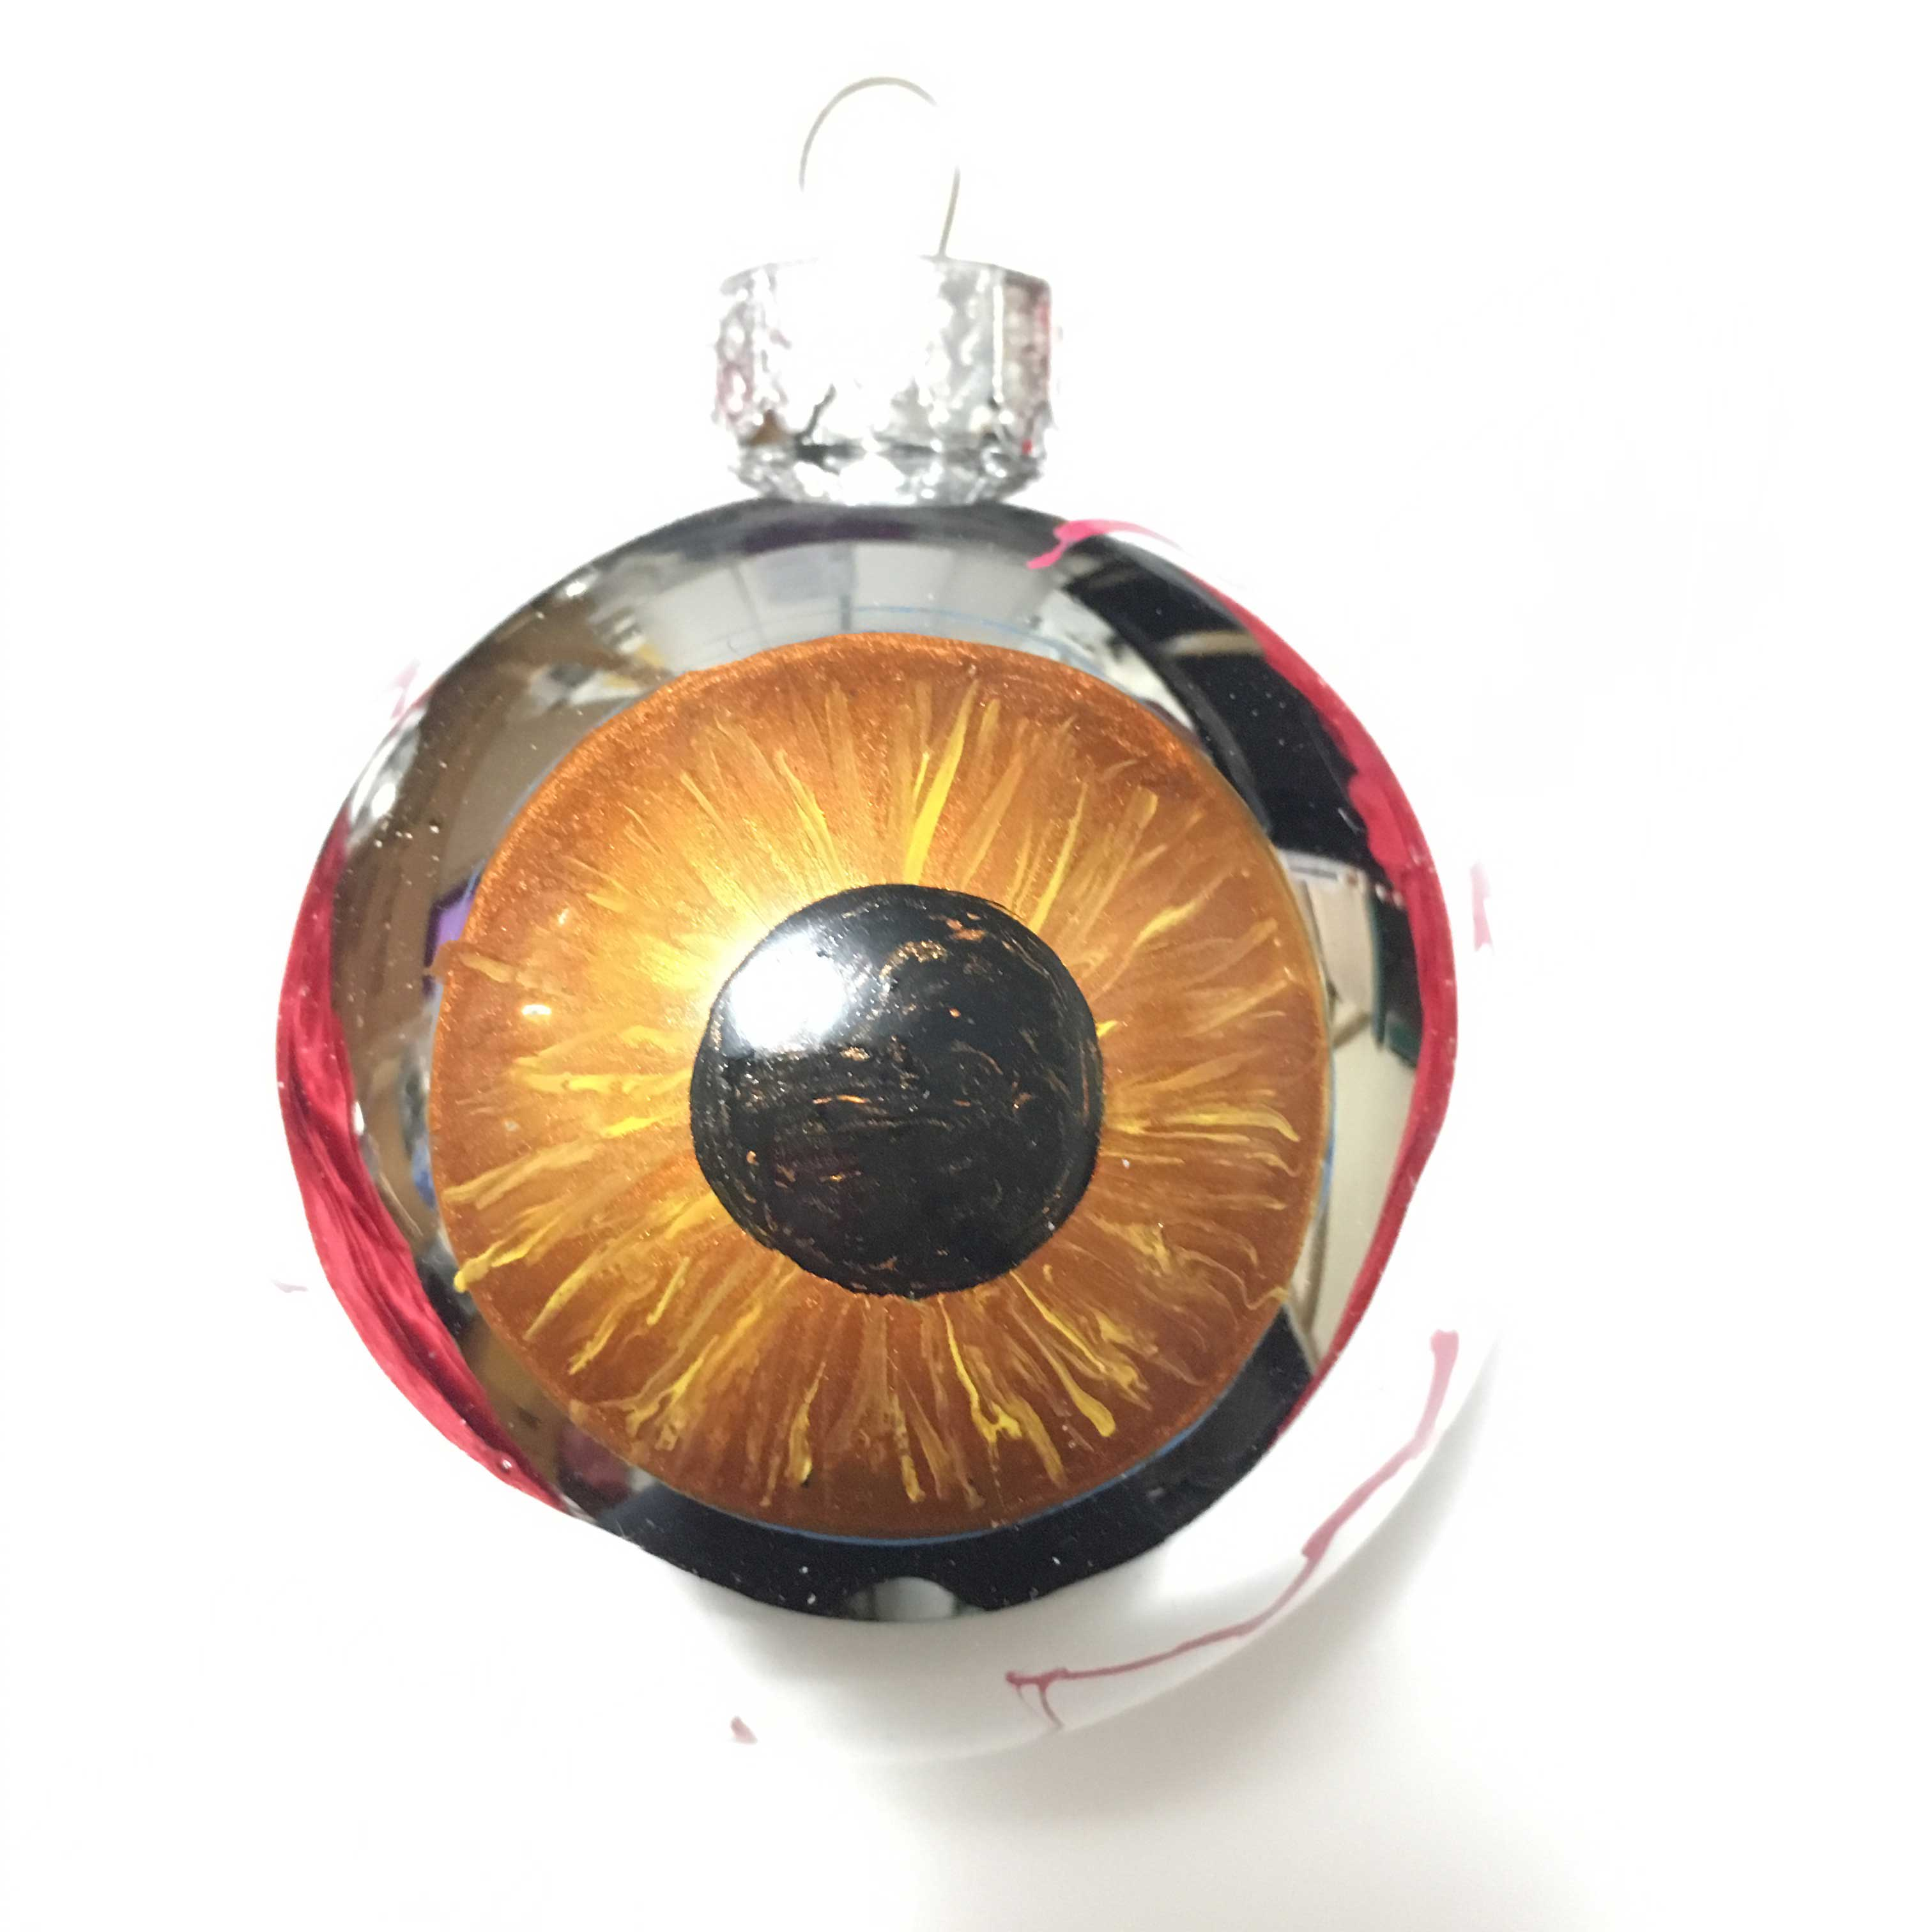 Brown eyeball ornament